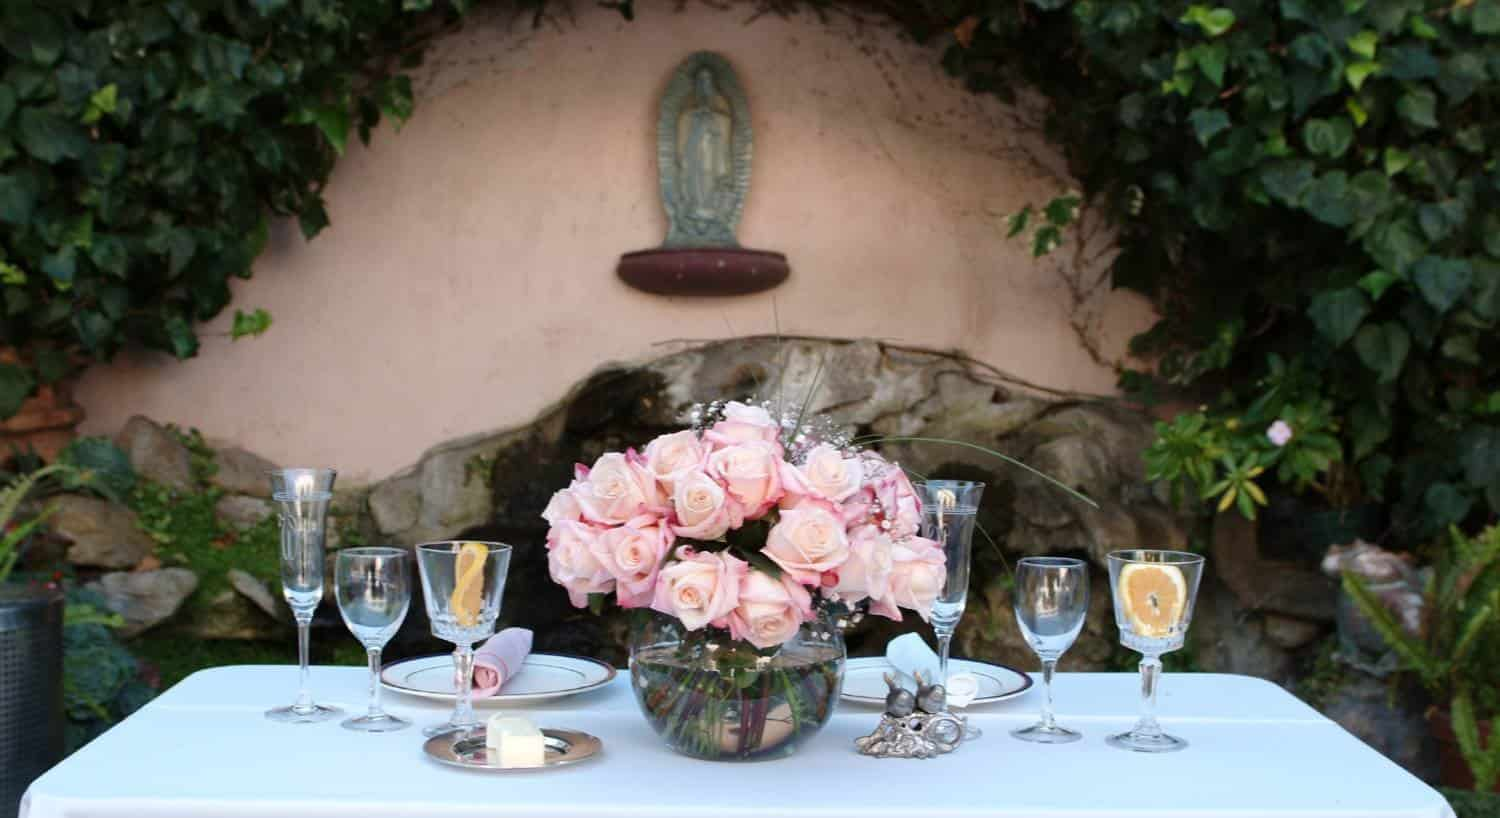 Bride and grooms white square table topped with pink roses, wine glasses, white plates and pink napkins